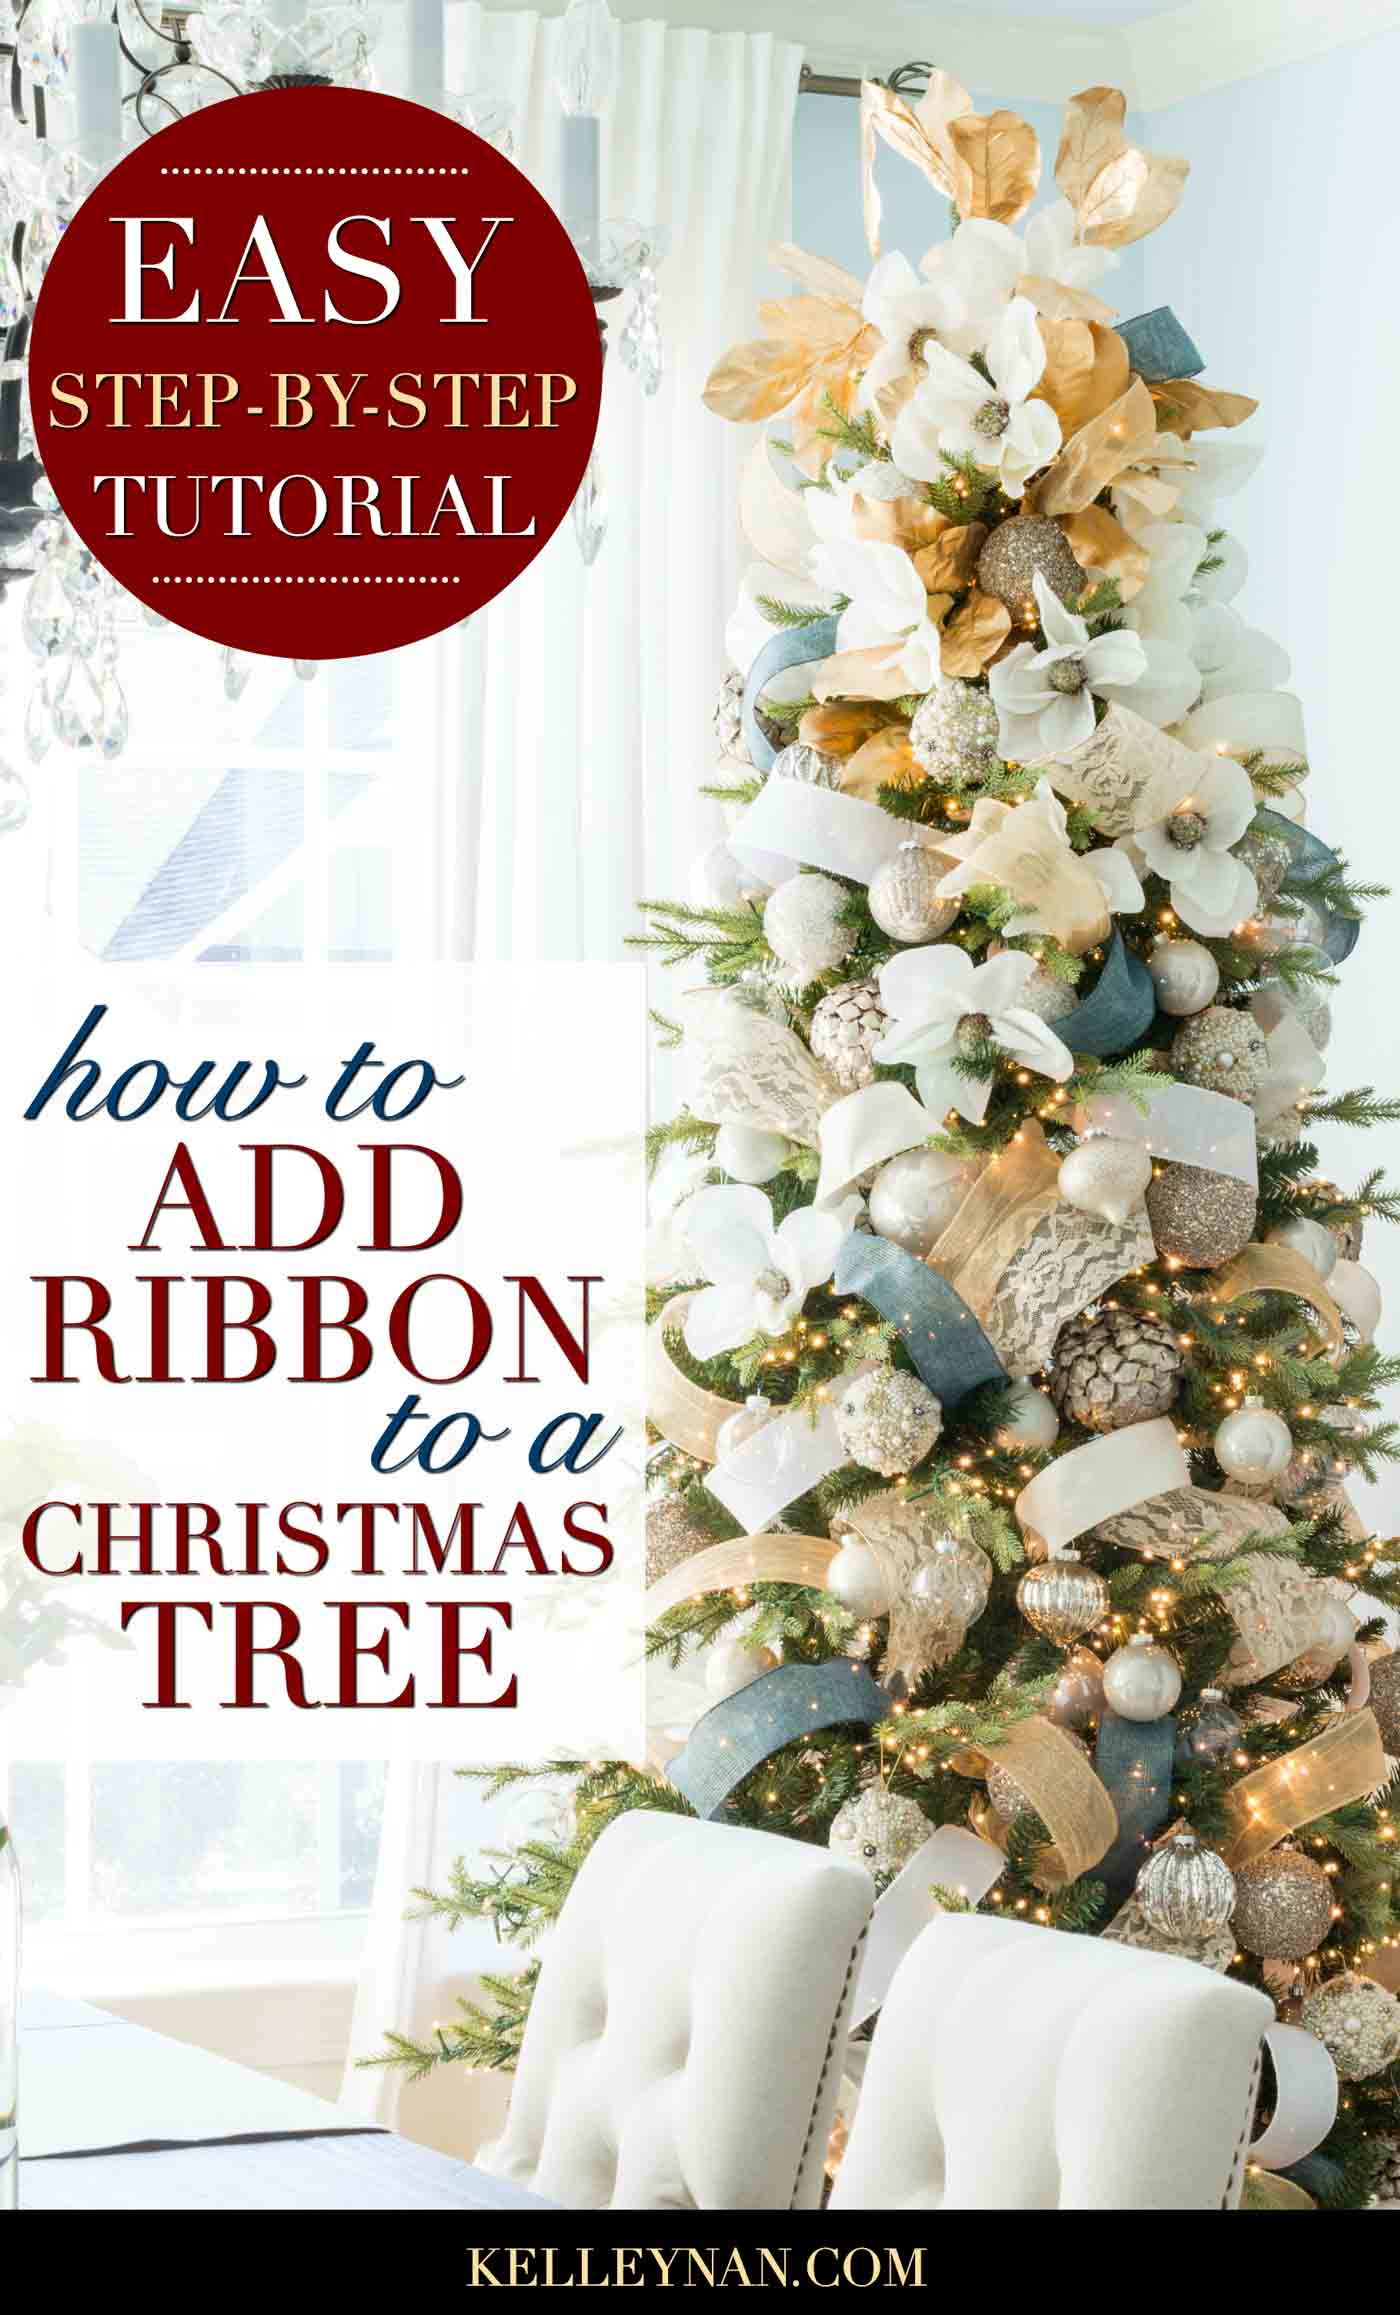 How to Add Ribbon to a Christmas Tree Like a Pro! Step by Step Tutorial for How to Put Ribbon On a Christmas Tree